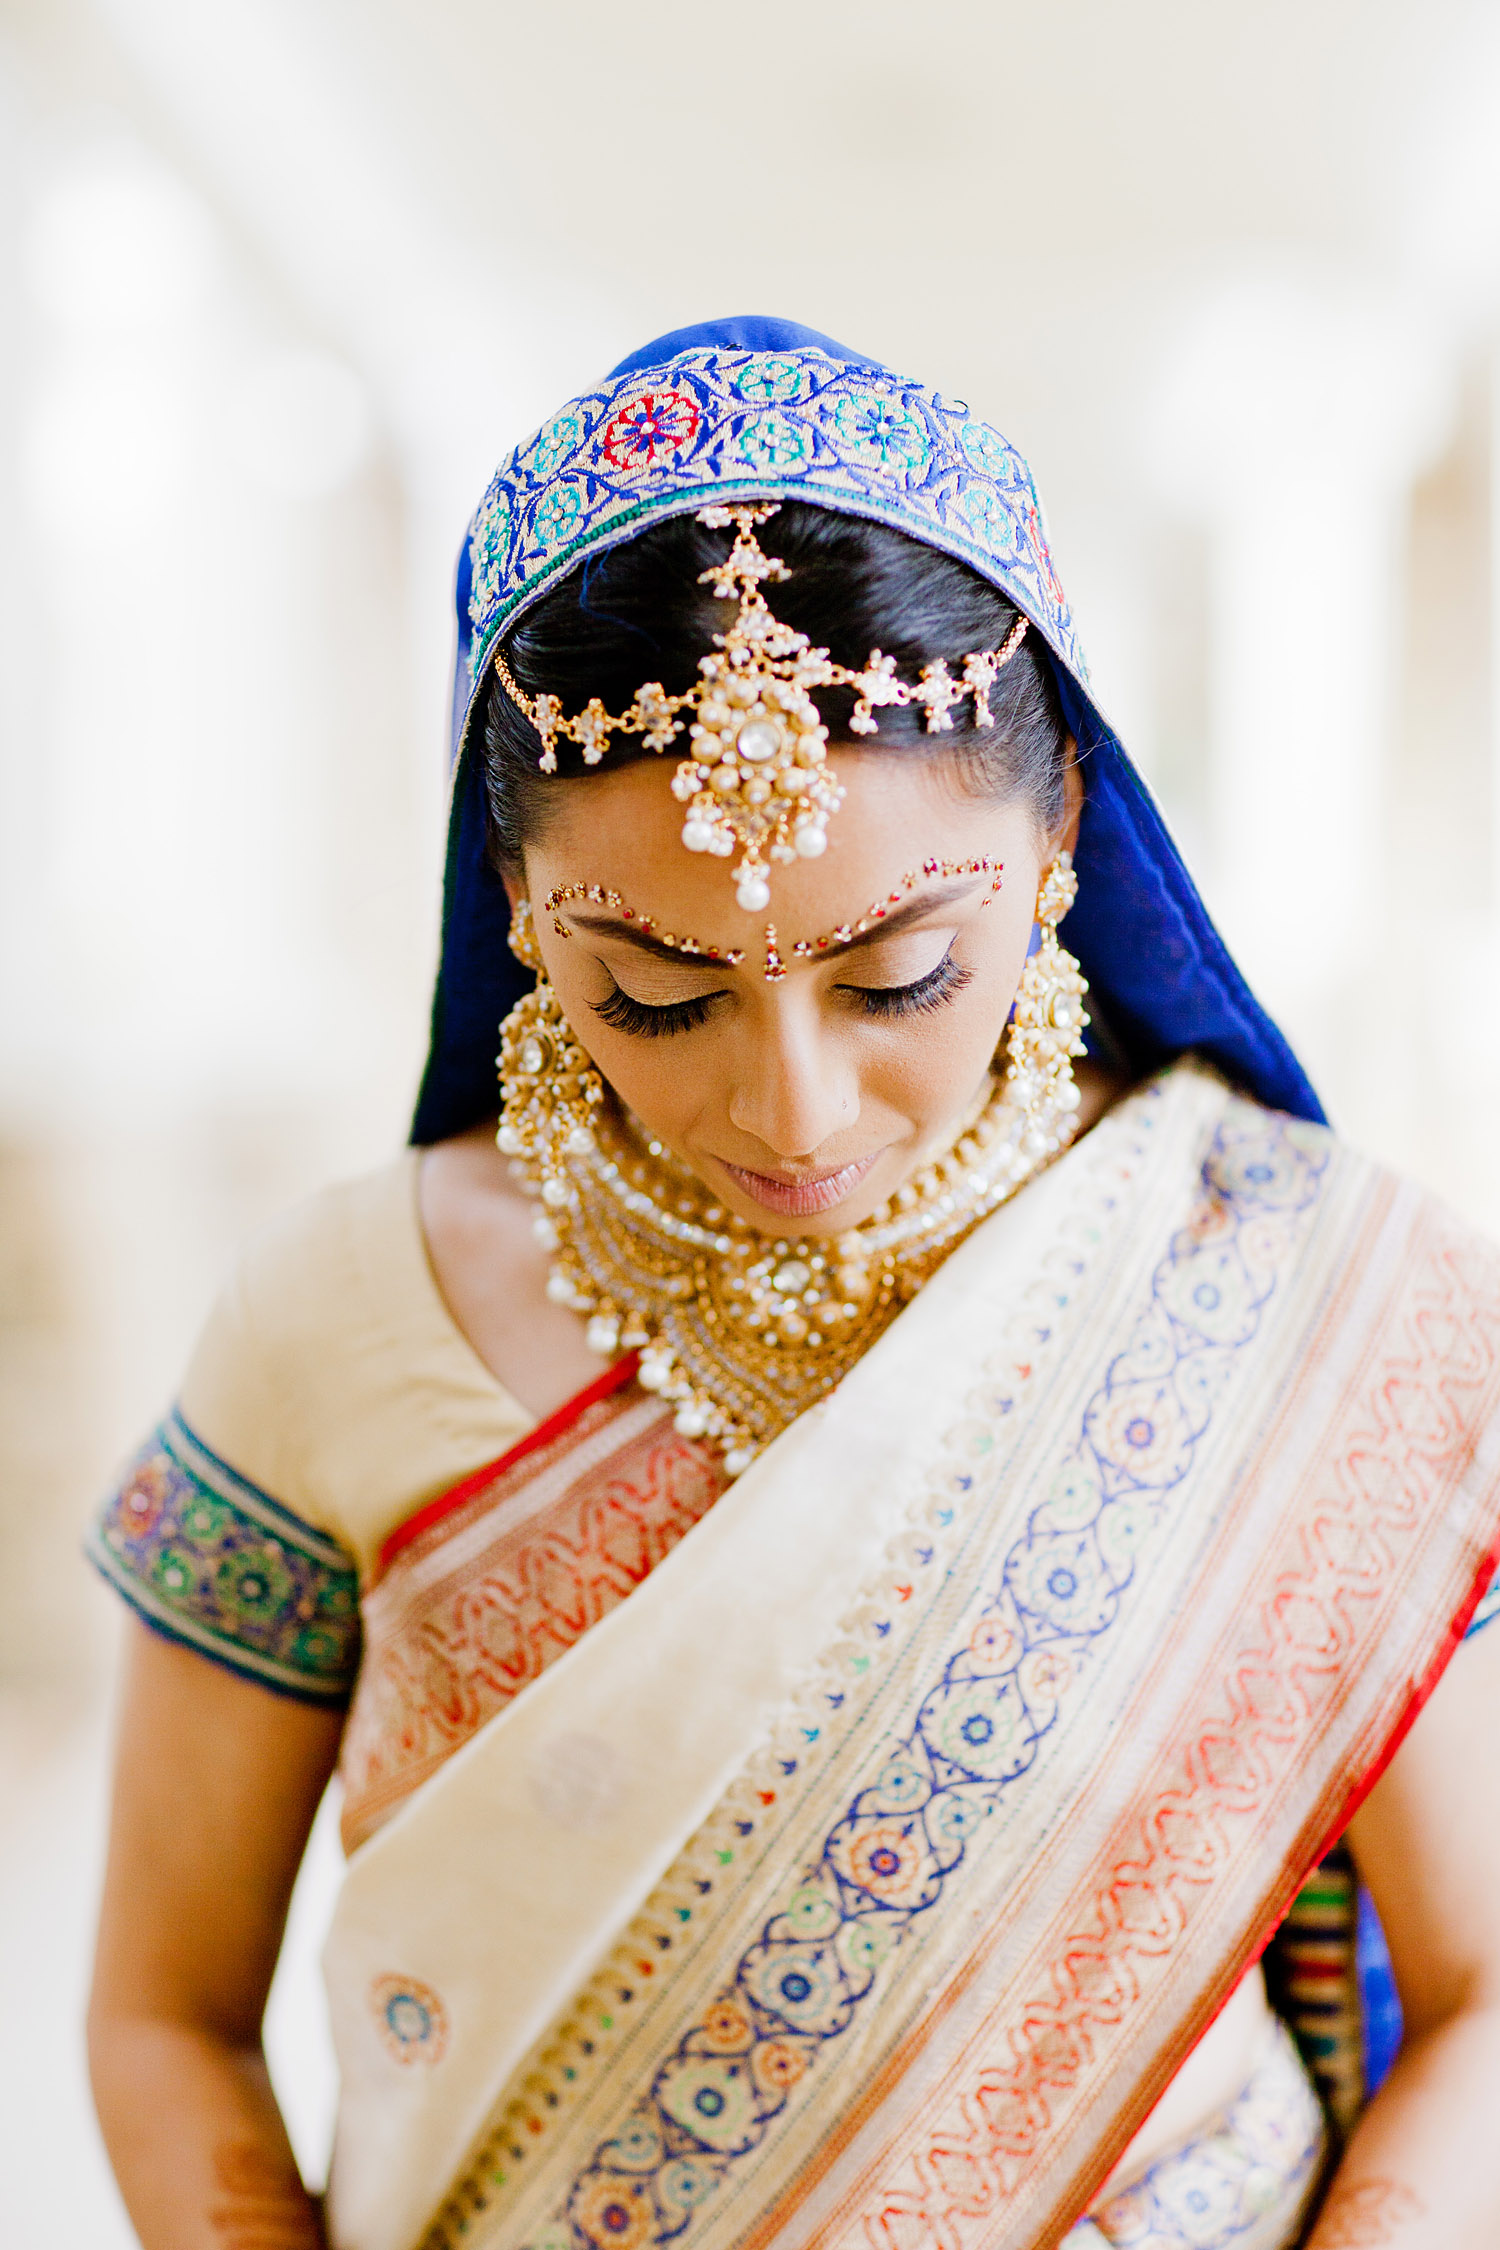 Hindu bride during her indian wedding wearing her mother's saree photographed by Destination wedding photographer LExia Frank, a top indian wedding photographer for luxury indian weddings, photographs this luxury indian wedding on film because she prefers film photography for indian weddings because of the vibrant colors of film